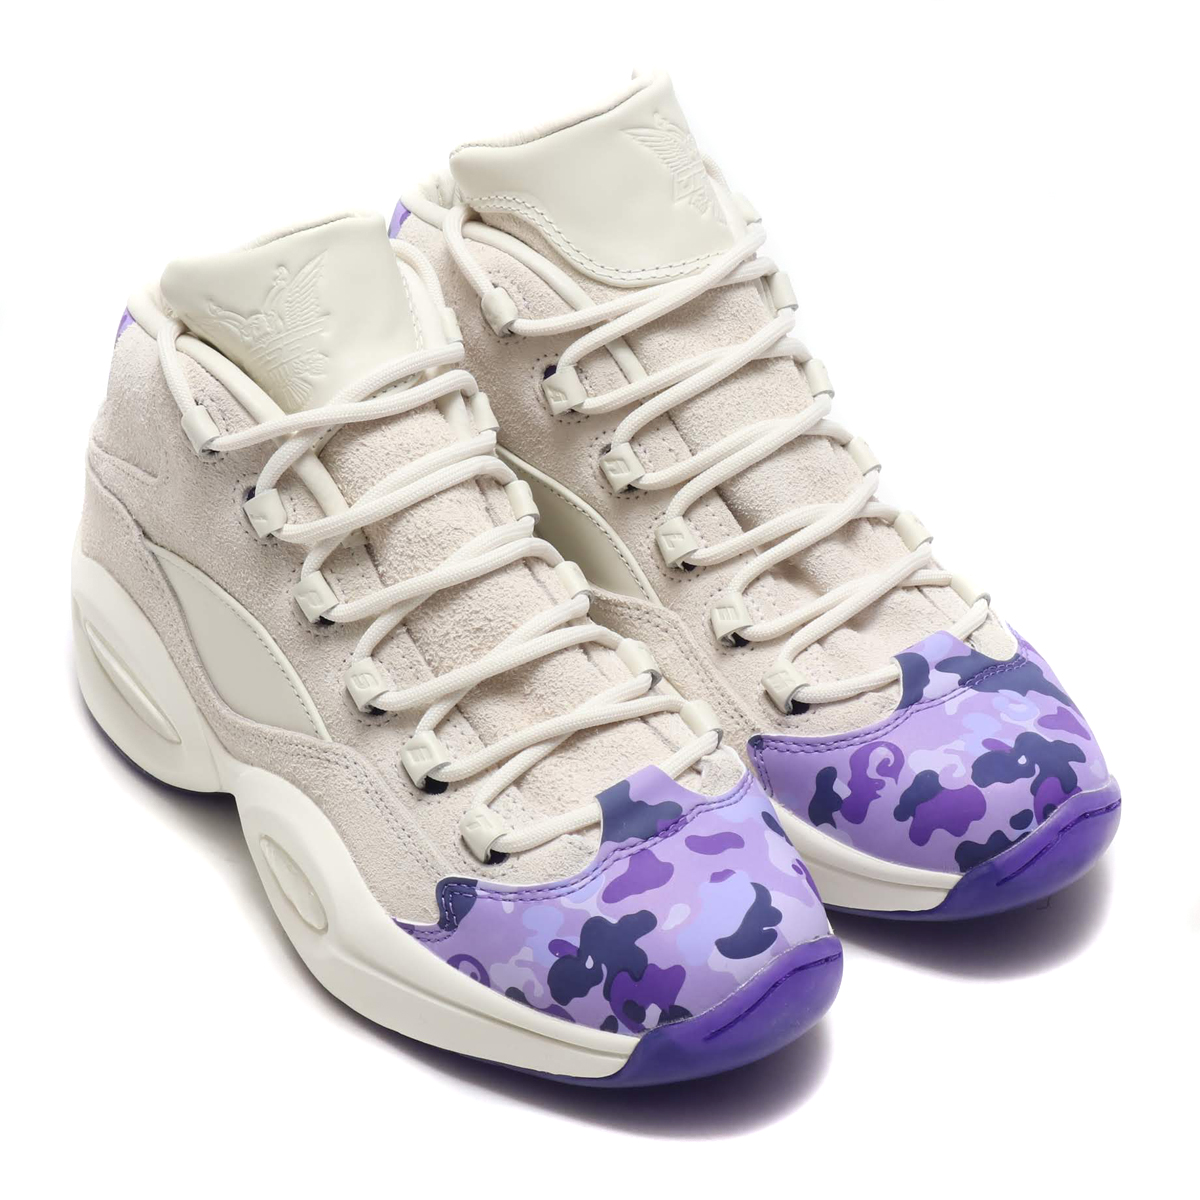 Reebok QUESTION MID CAMRON(リーボック クエスチョン ミッド CAMRON)CHALK/RUSH ORCHID/TEAM PURPLE/CLASSIC WHITE【メンズ スニーカー】18FW-I